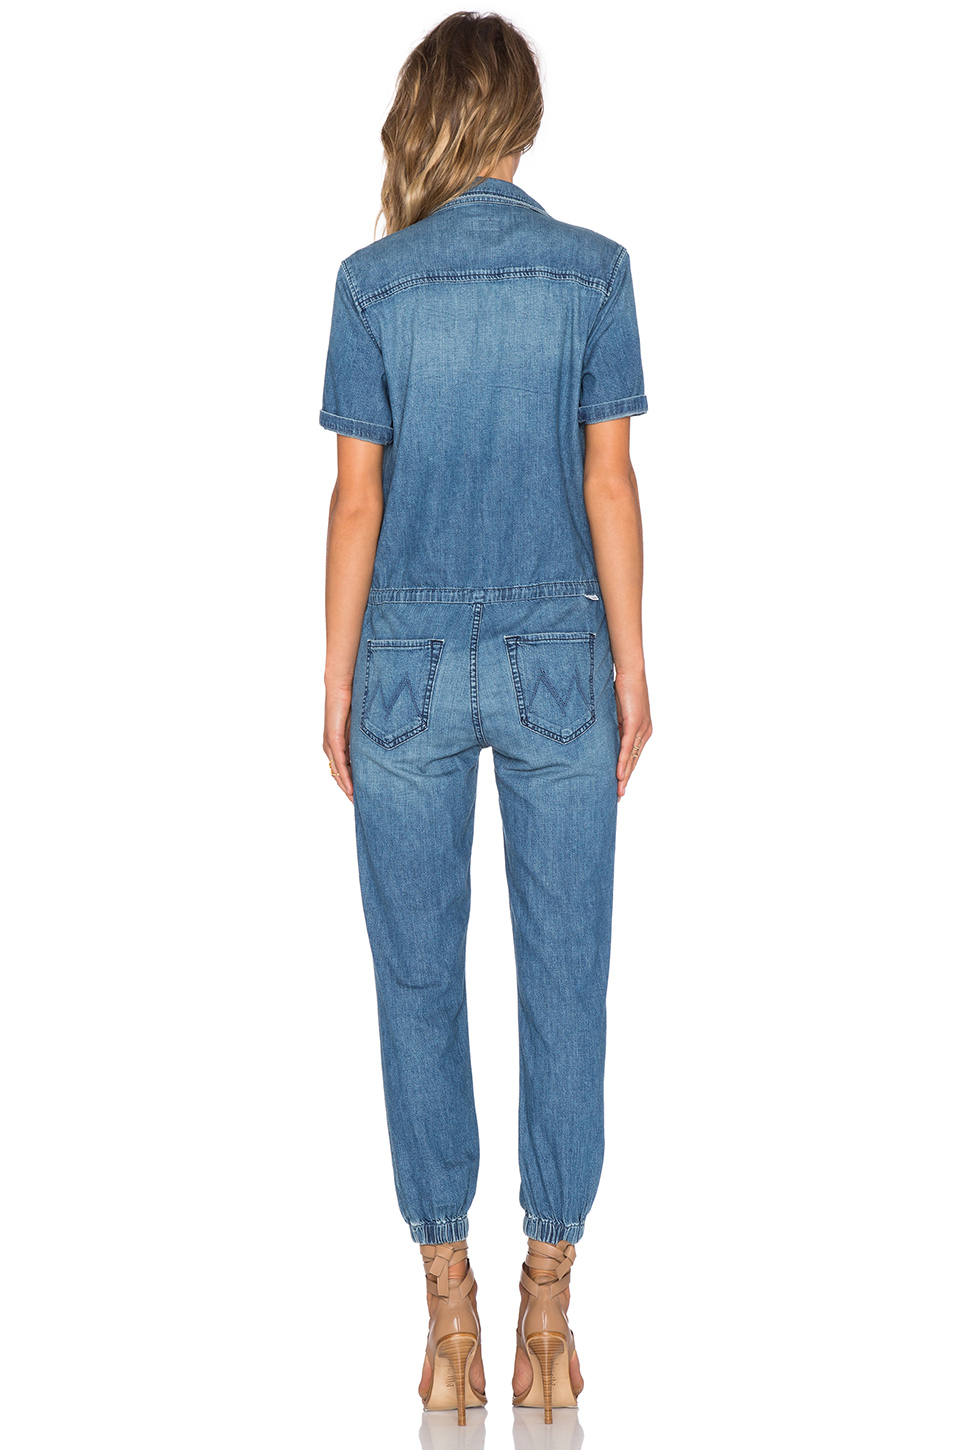 Find denim jumpsuit shorts at ShopStyle. Shop the latest collection of denim jumpsuit shorts from the most popular stores - all in one place. Skip to Content 3x1 Denim Shorts Jumpsuit $ Get a Sale Alert Pre-Owned at TheRealReal Frame Short Sleeve.